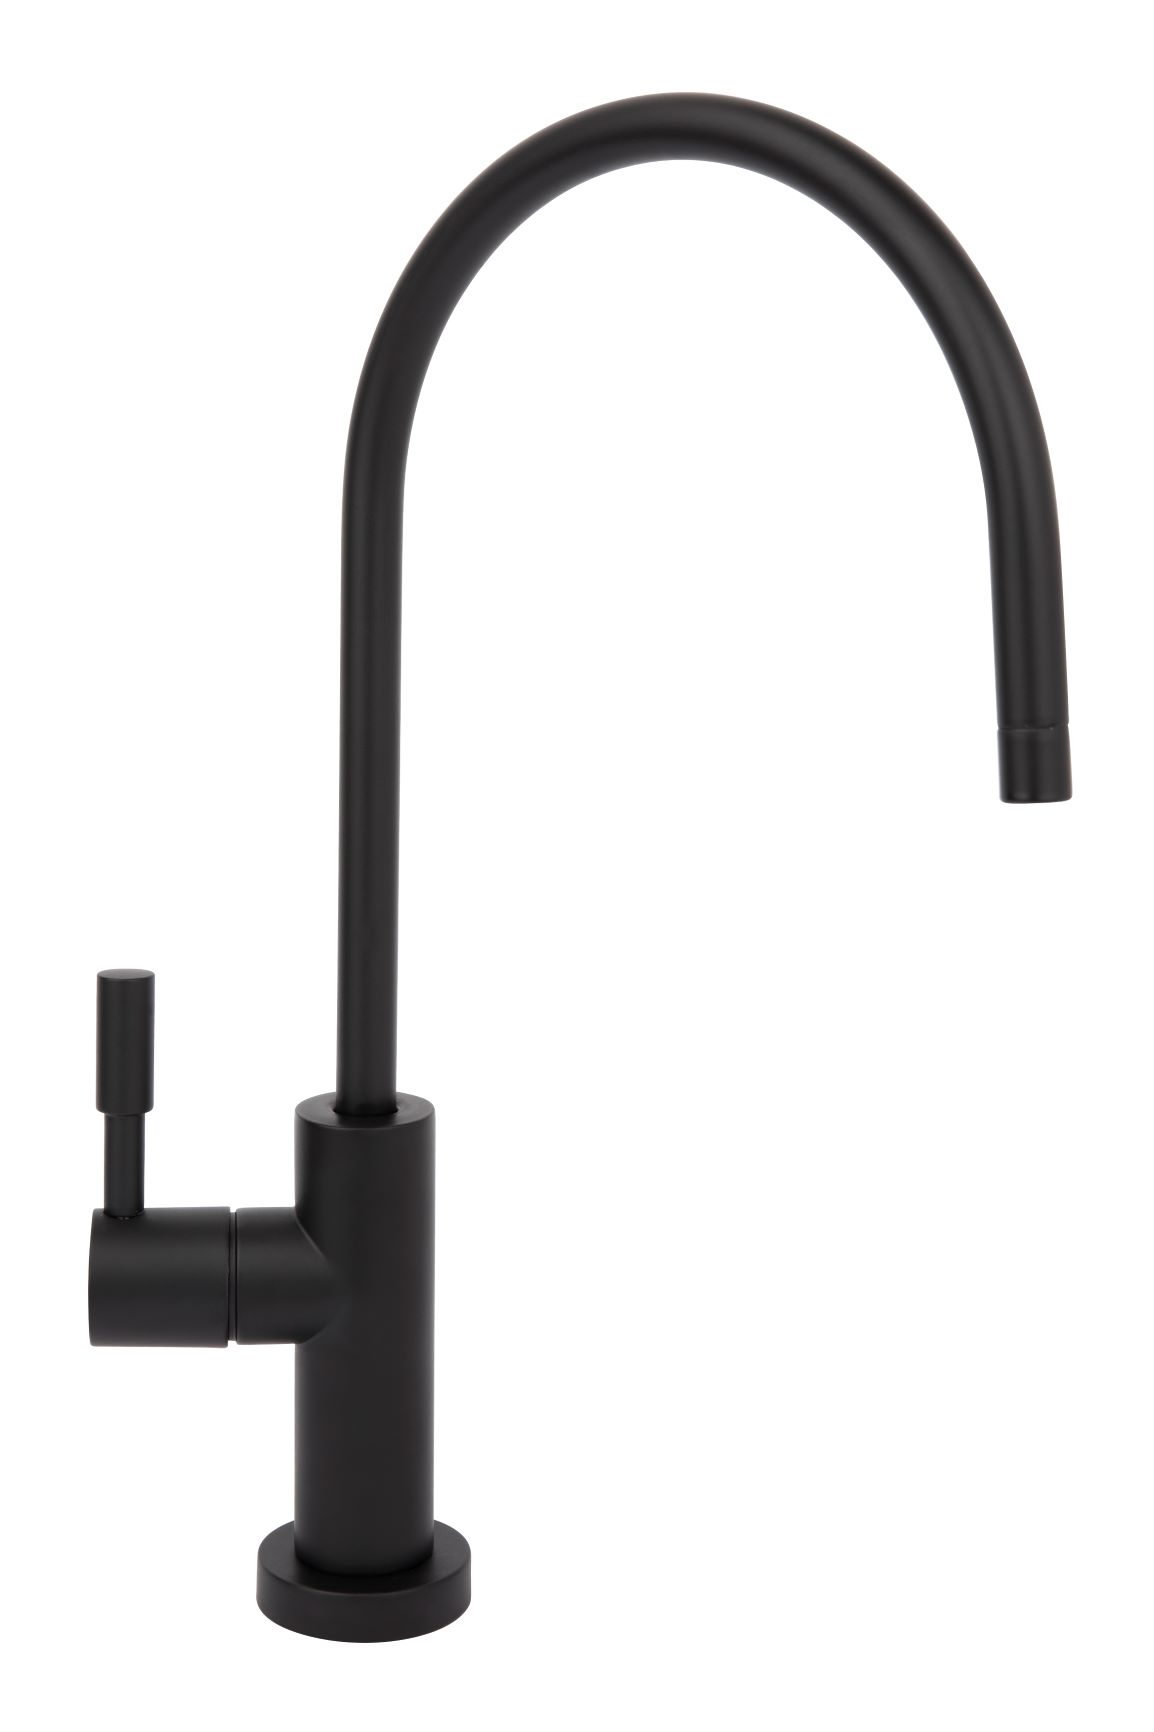 Mode - Matte Black Water Filter Tap